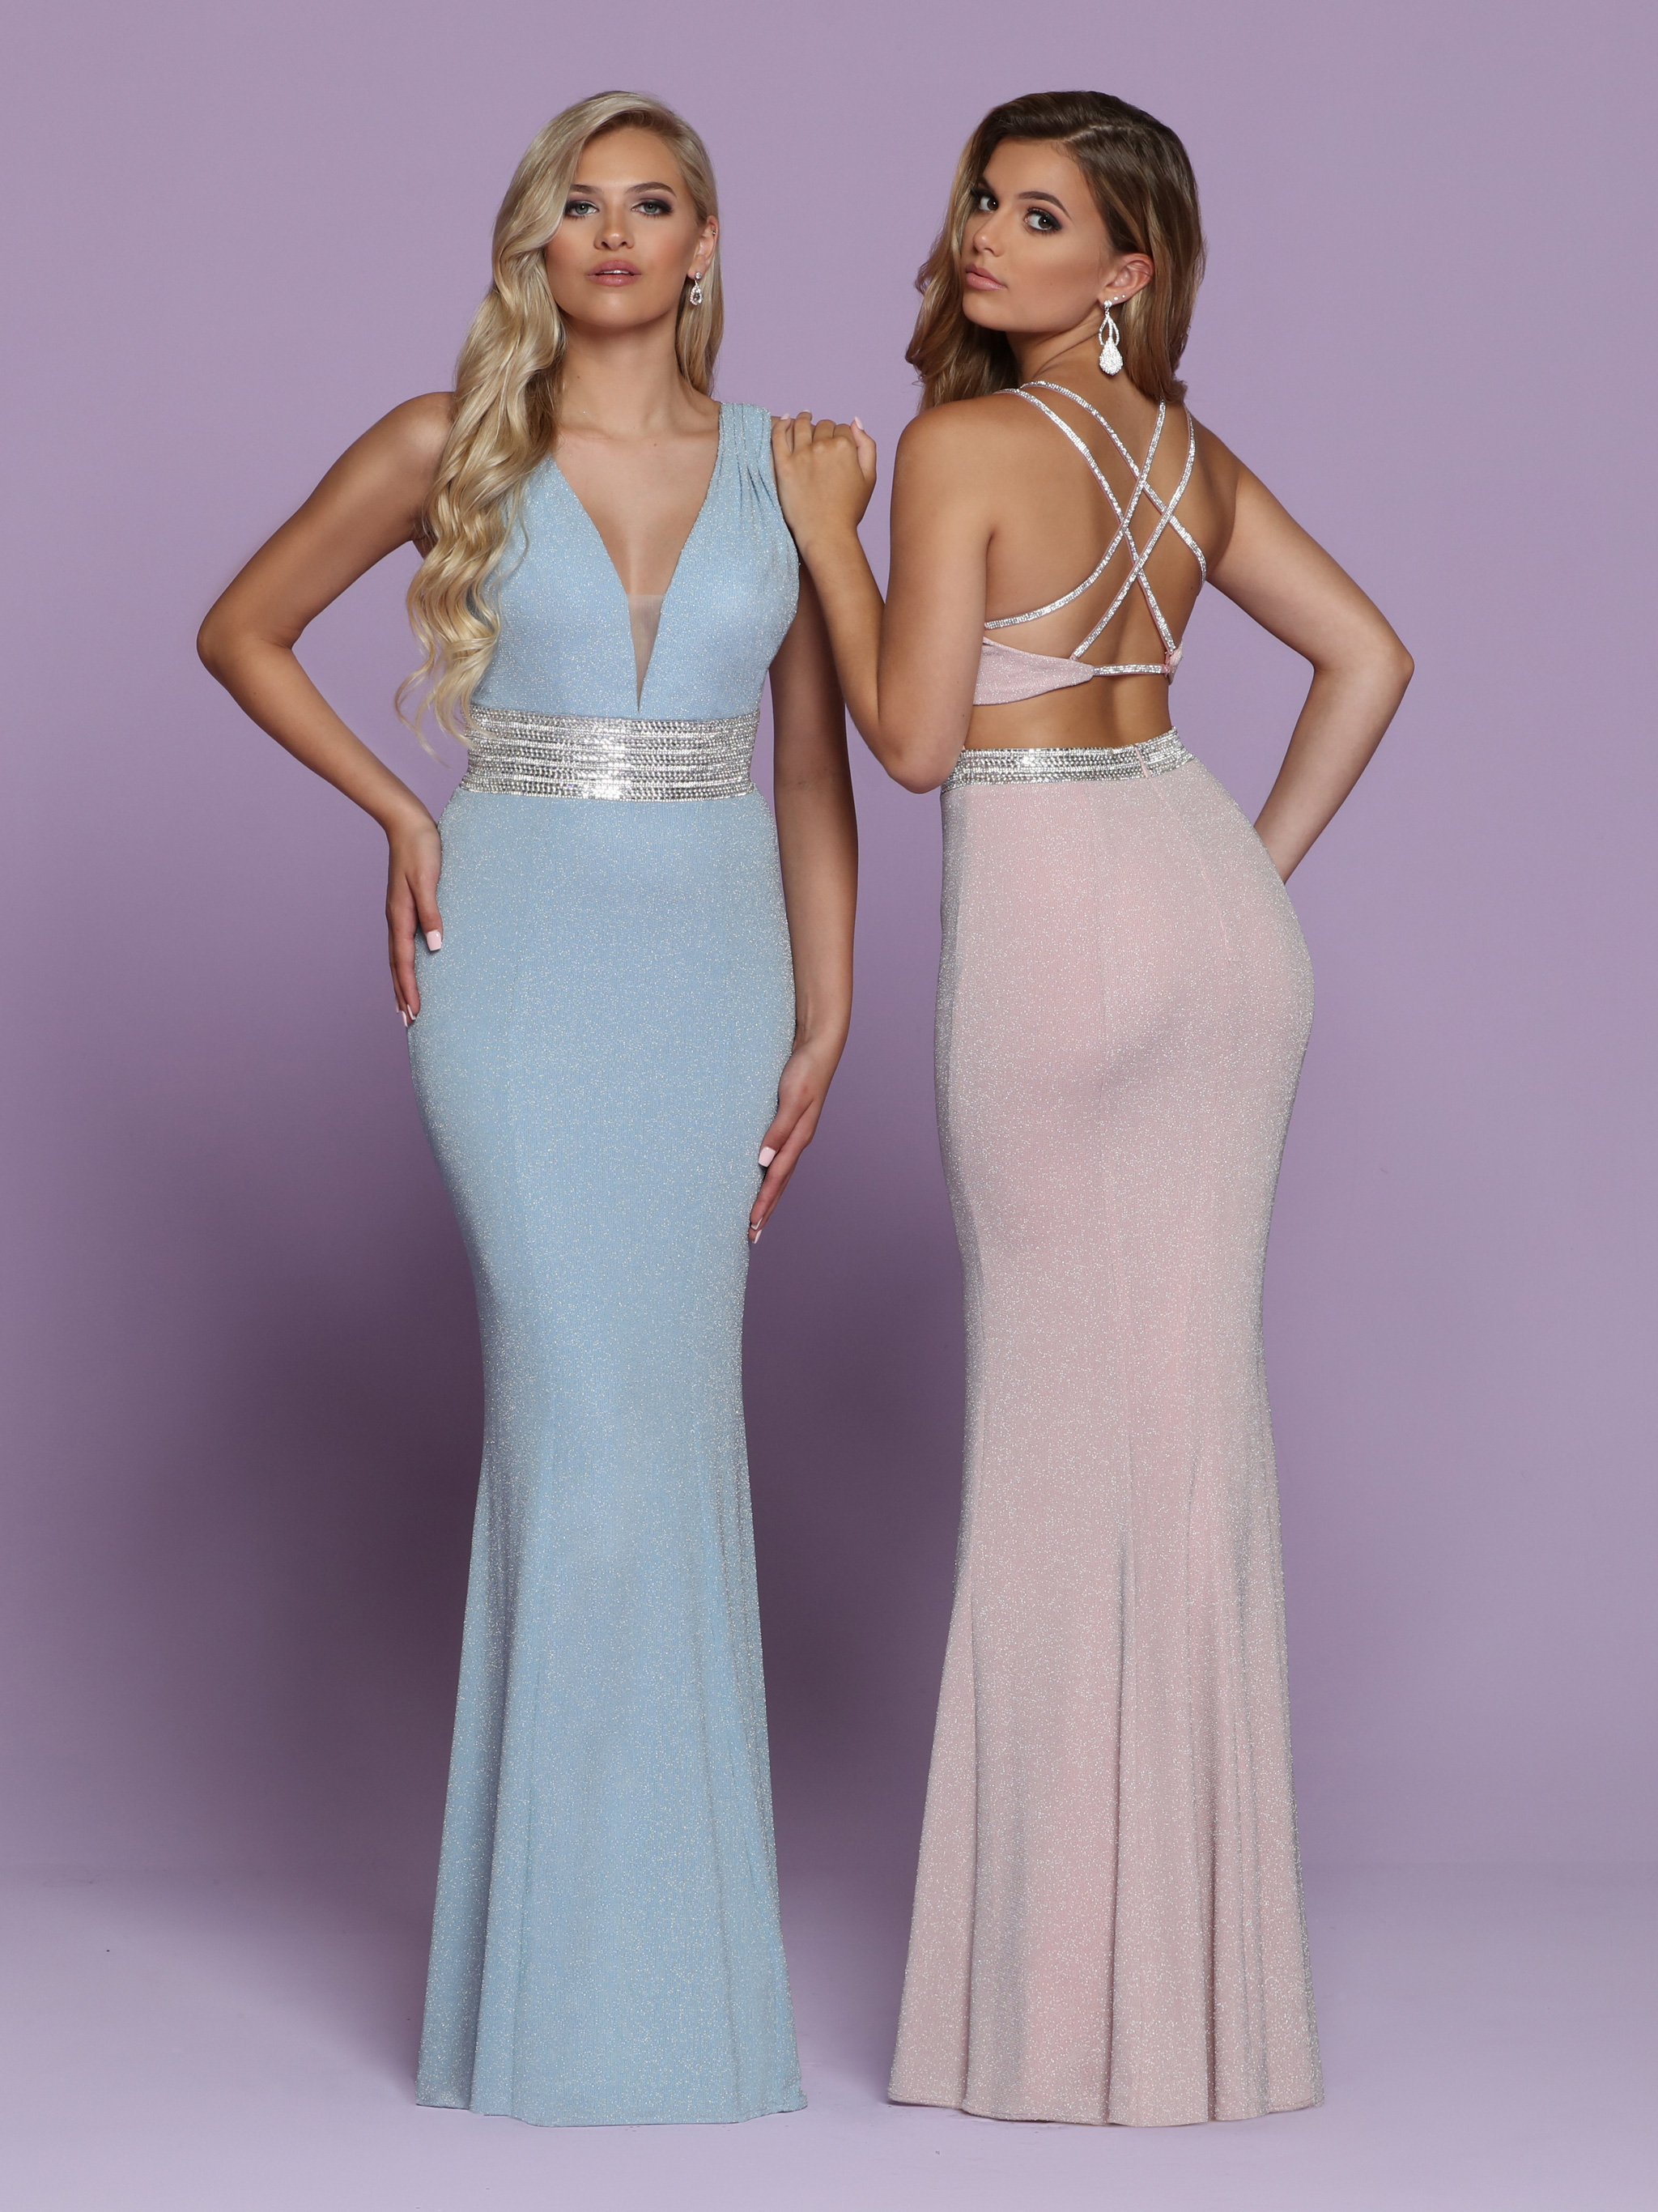 Image showing back view of style #72051